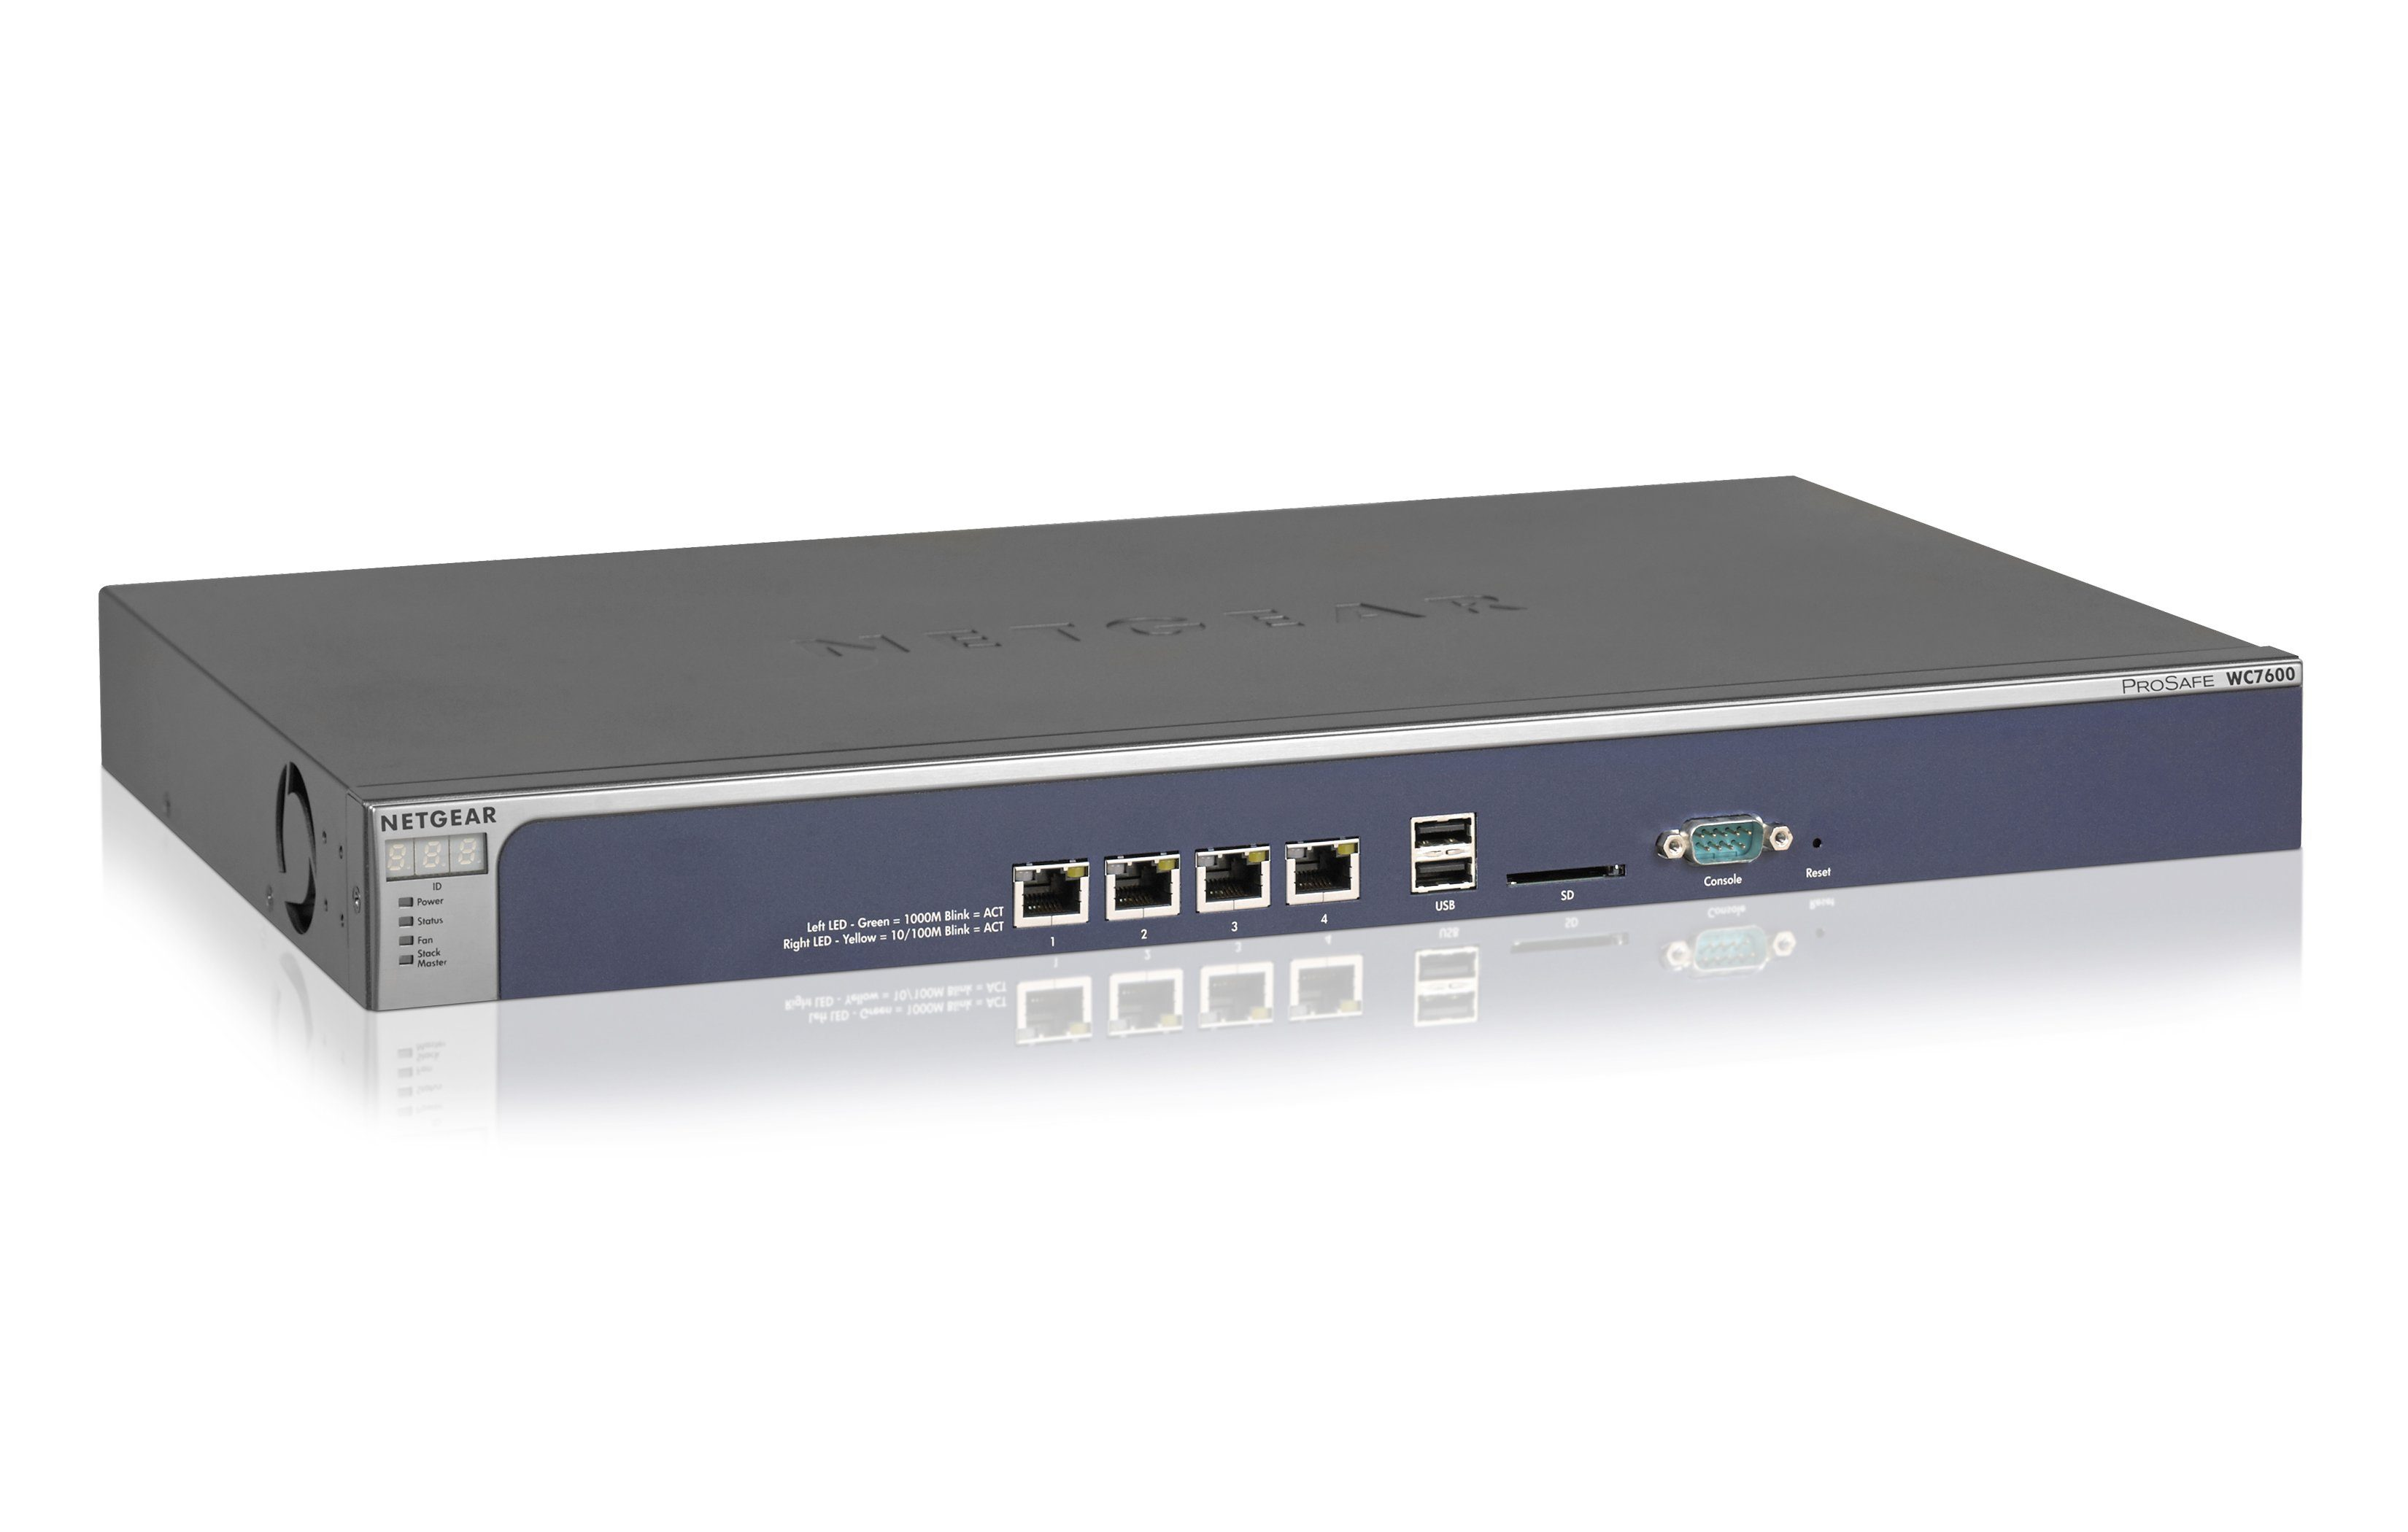 Netgear Access Point Hardware »50 AP PREMIUM WLAN CONTROLLER«